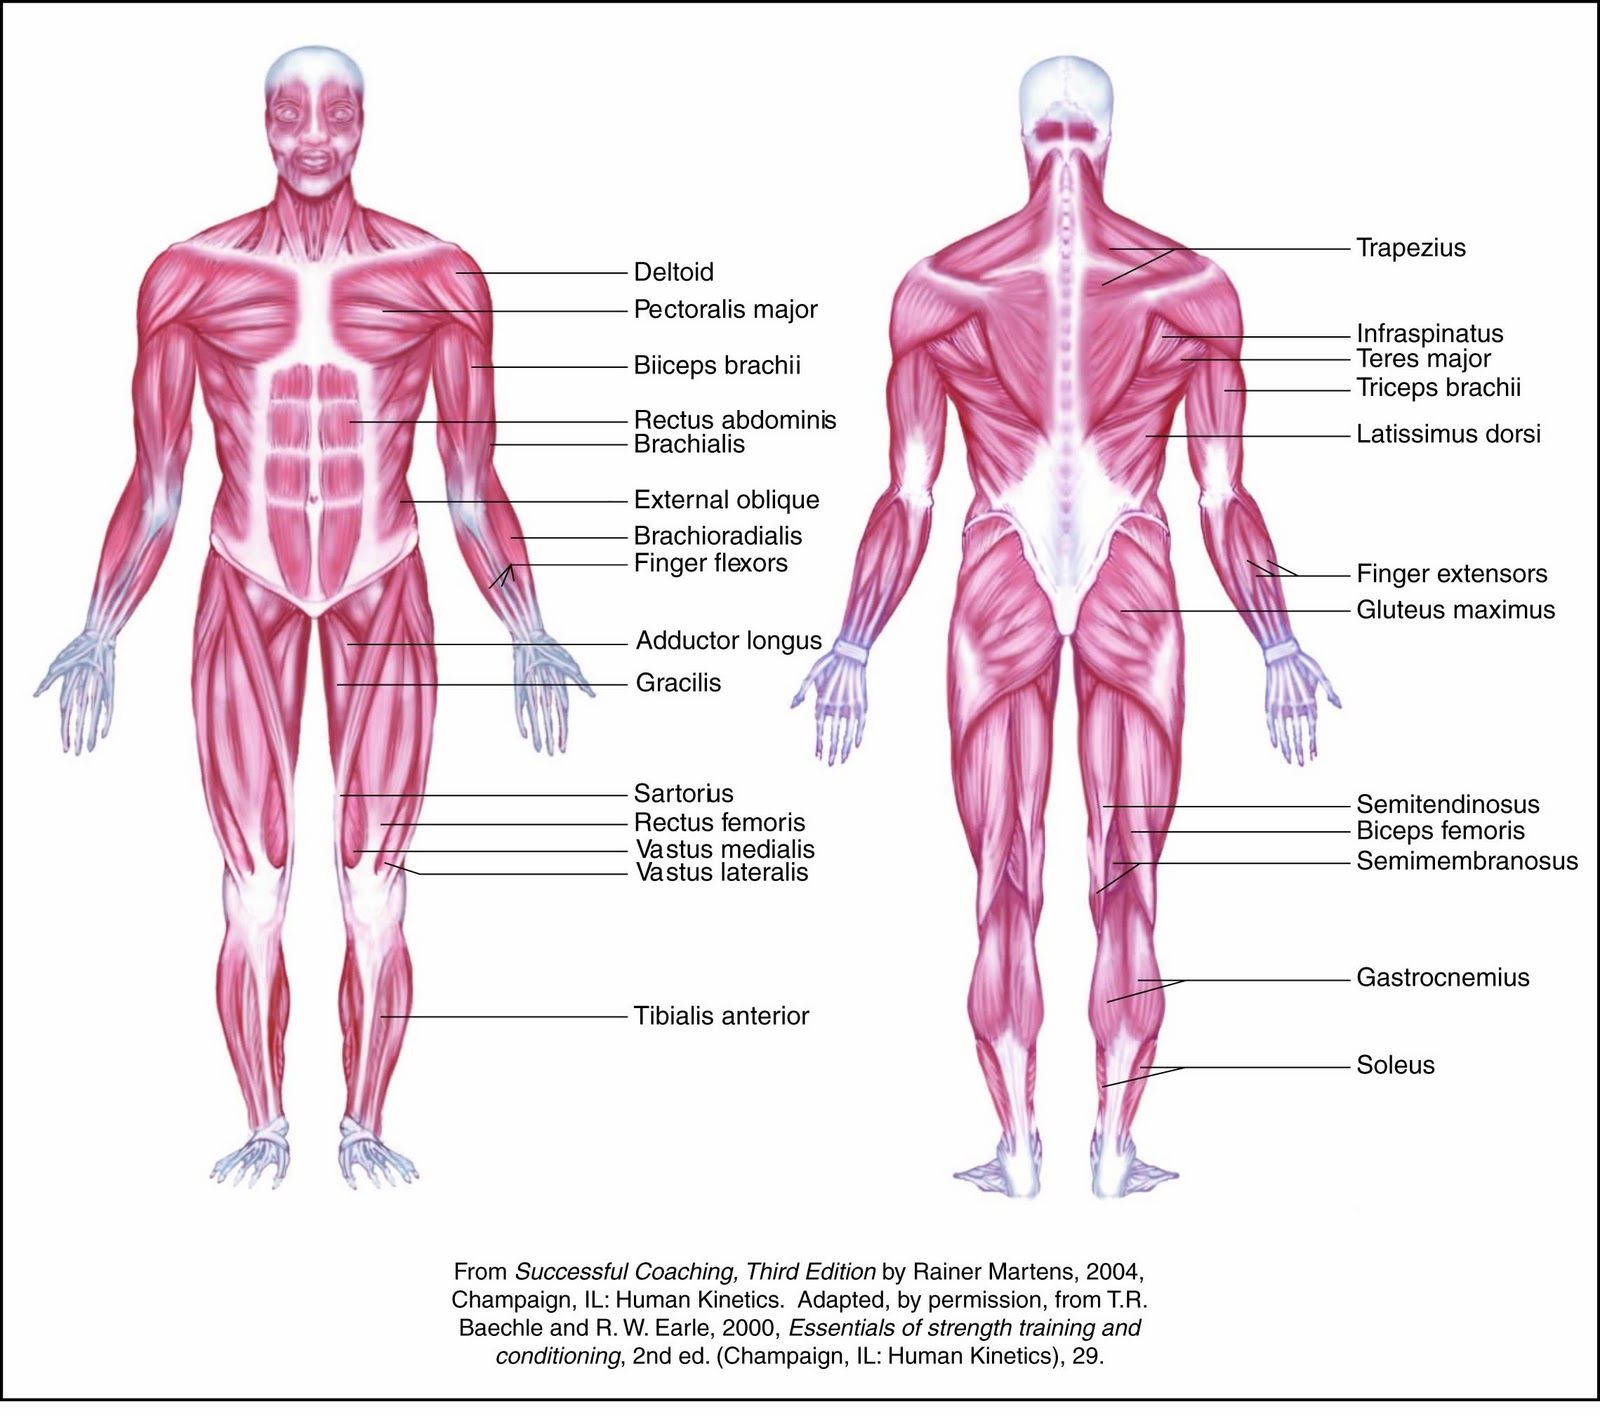 All Muscles In Human Body | Cea1.com – Human Body Anatomy | Anatomia ...